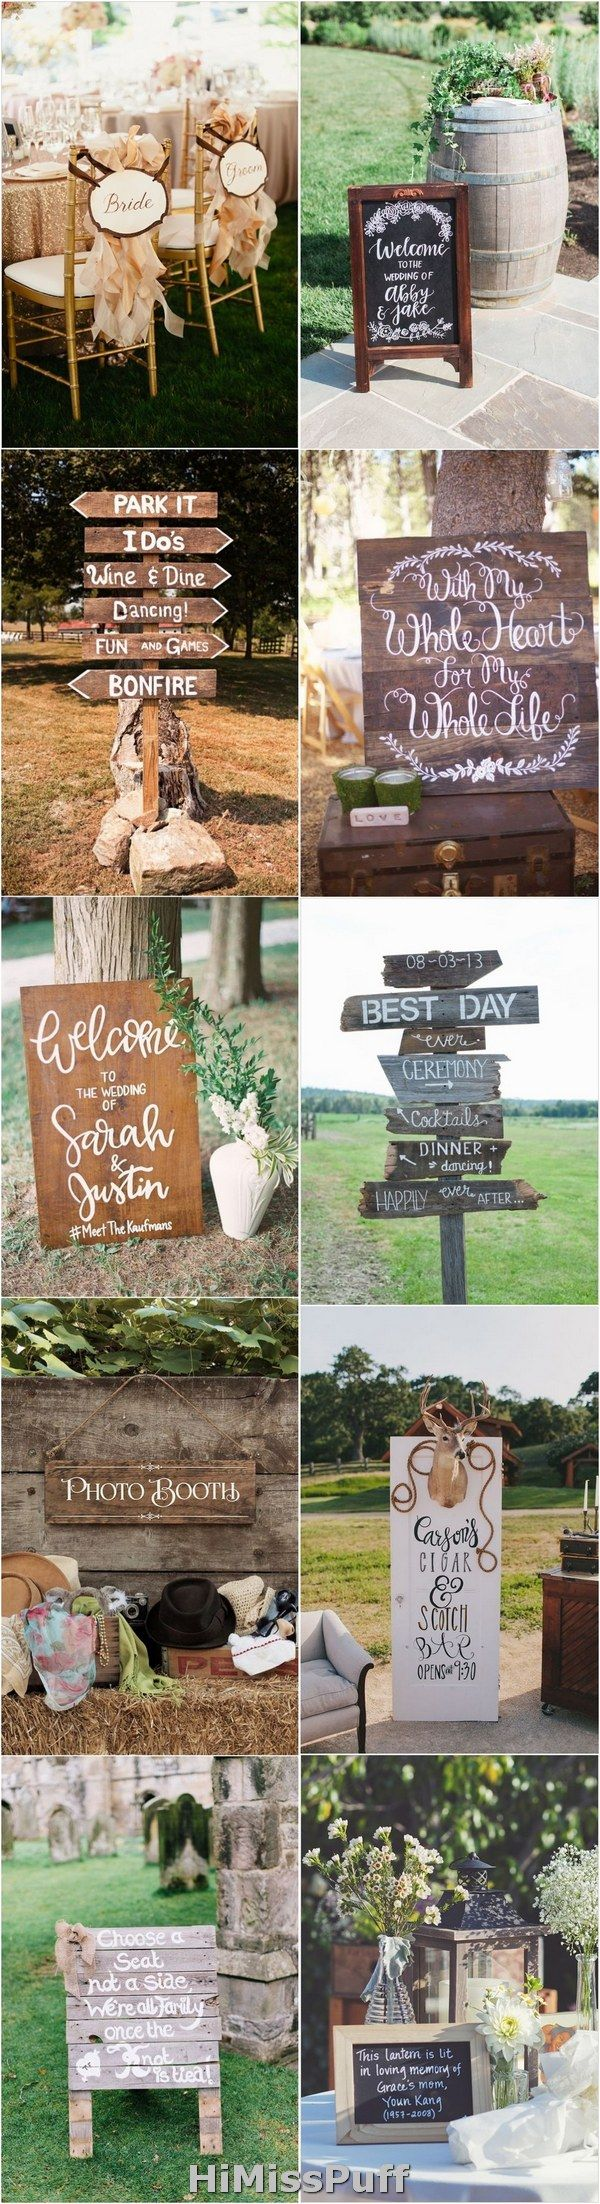 best wedding decoration images on pinterest weddings wedding